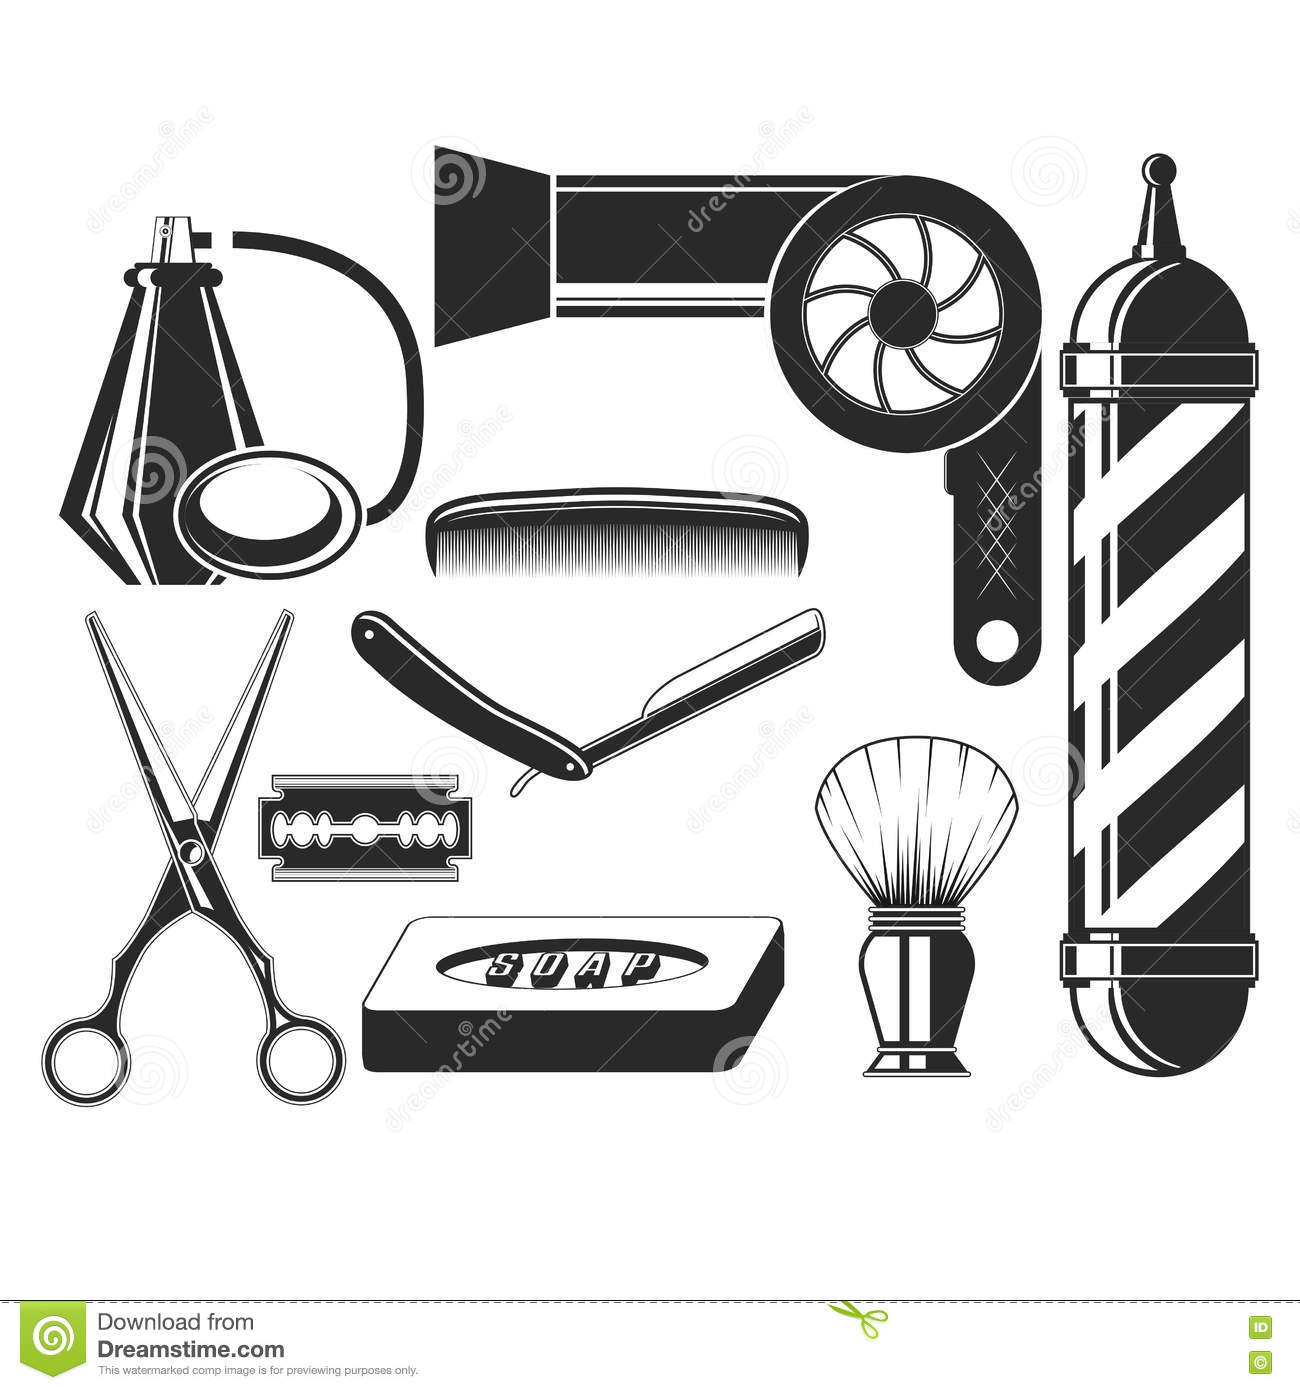 d5aa47016f4 Vector set of hair salon elements in vintage style. Hair cut beauty and barber  shop